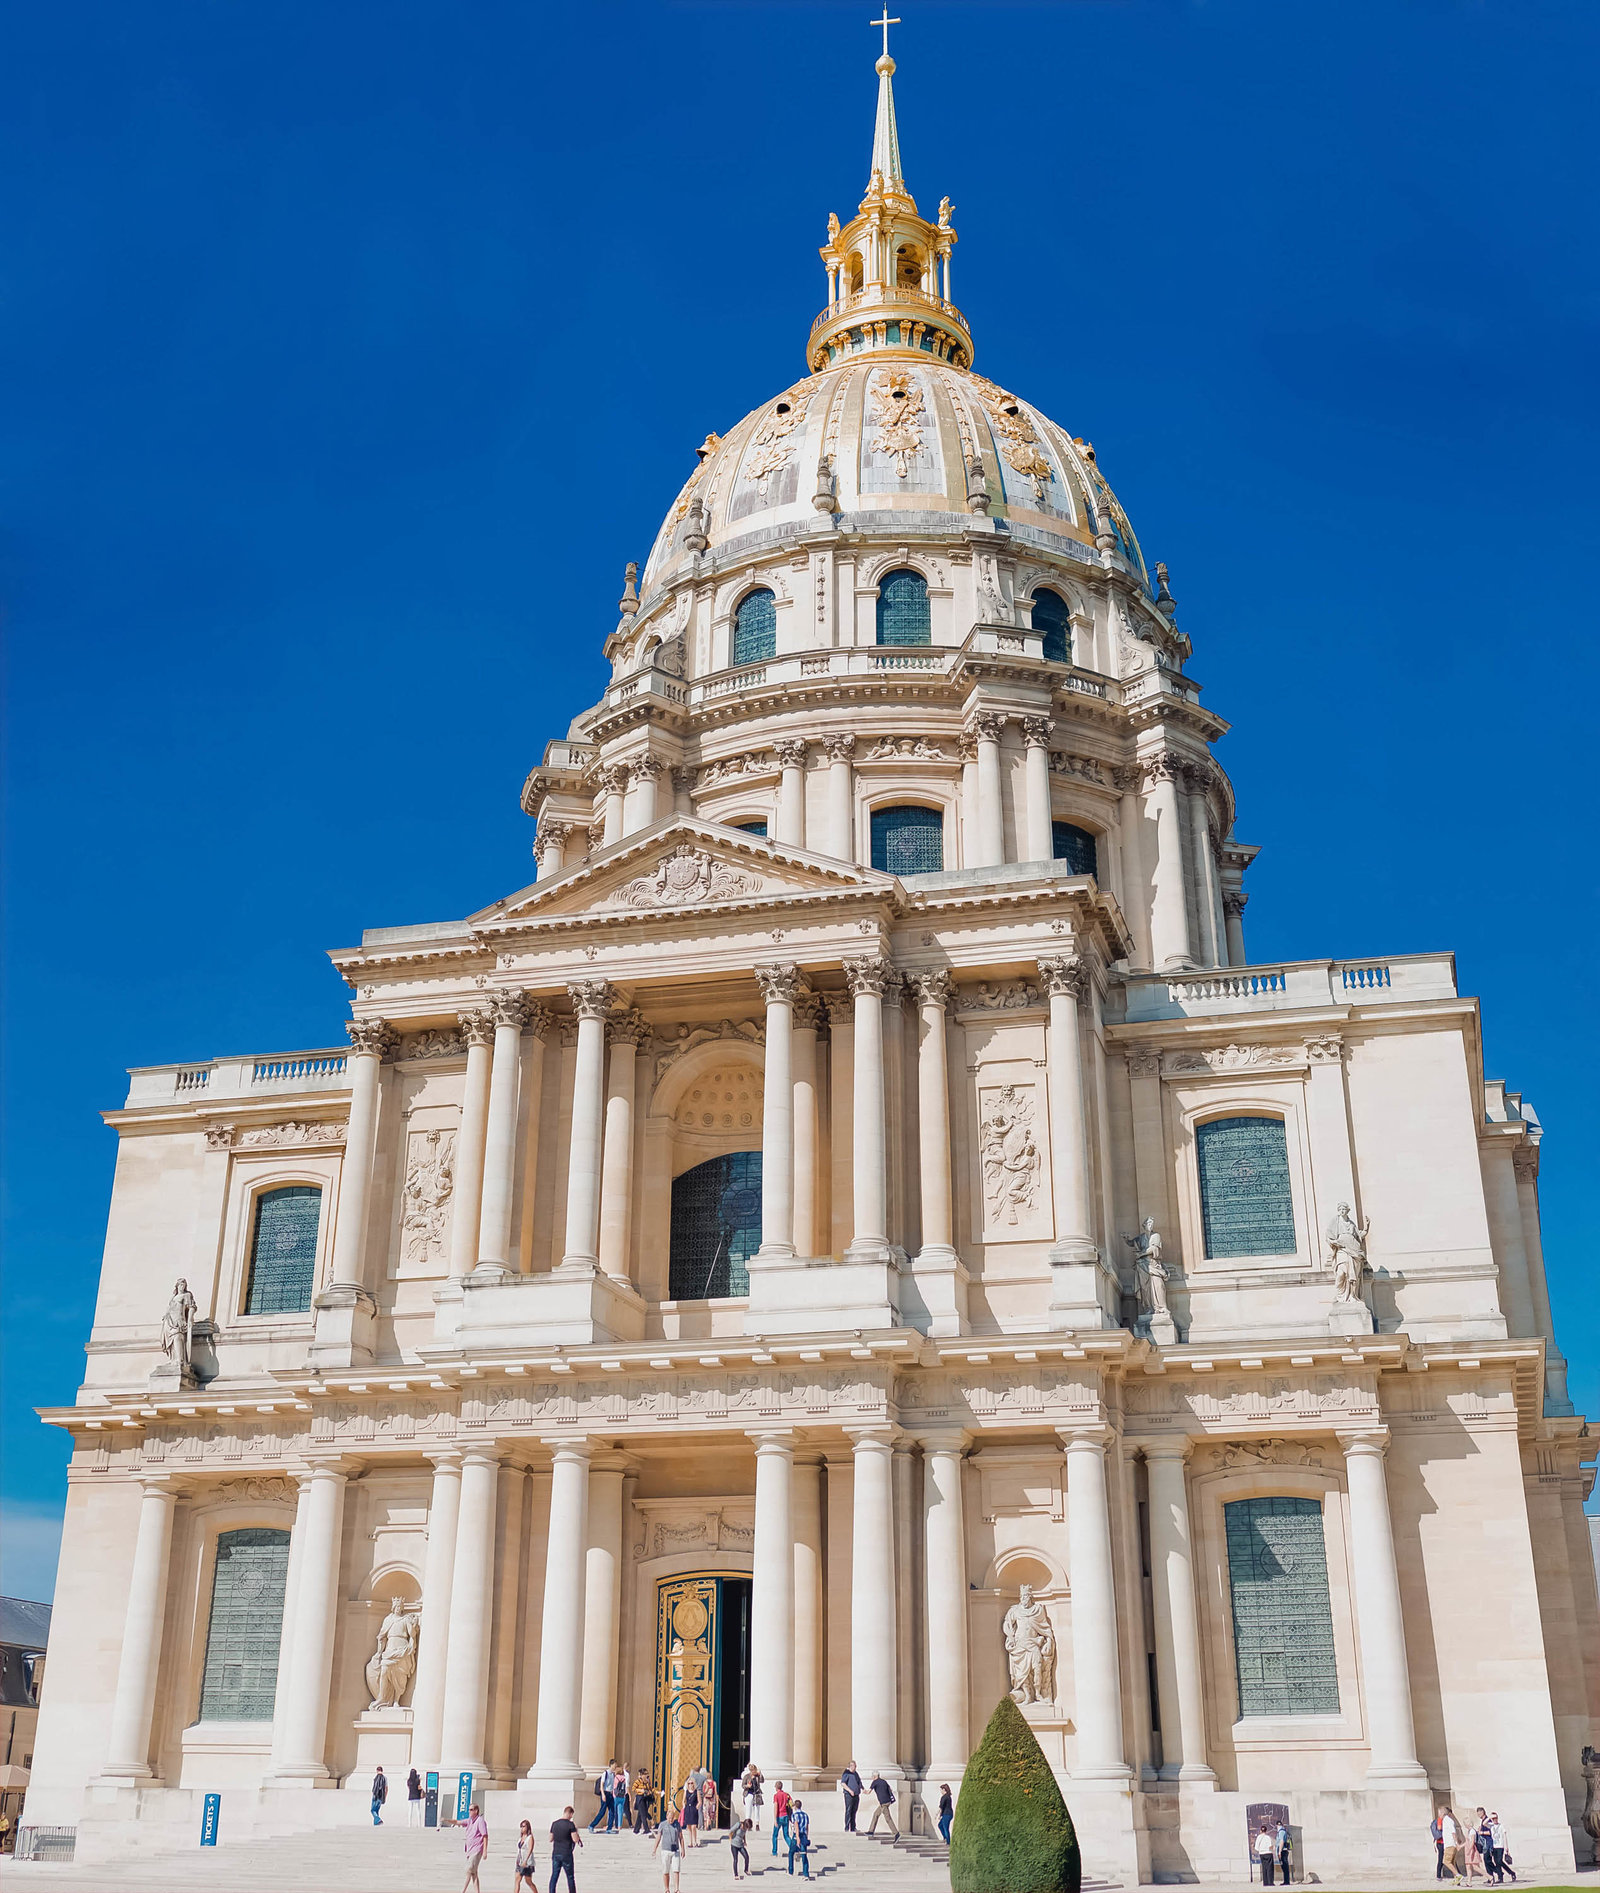 dome-invalides-paris-france-travel-destination-wedding-kate-timbers-photography-1982